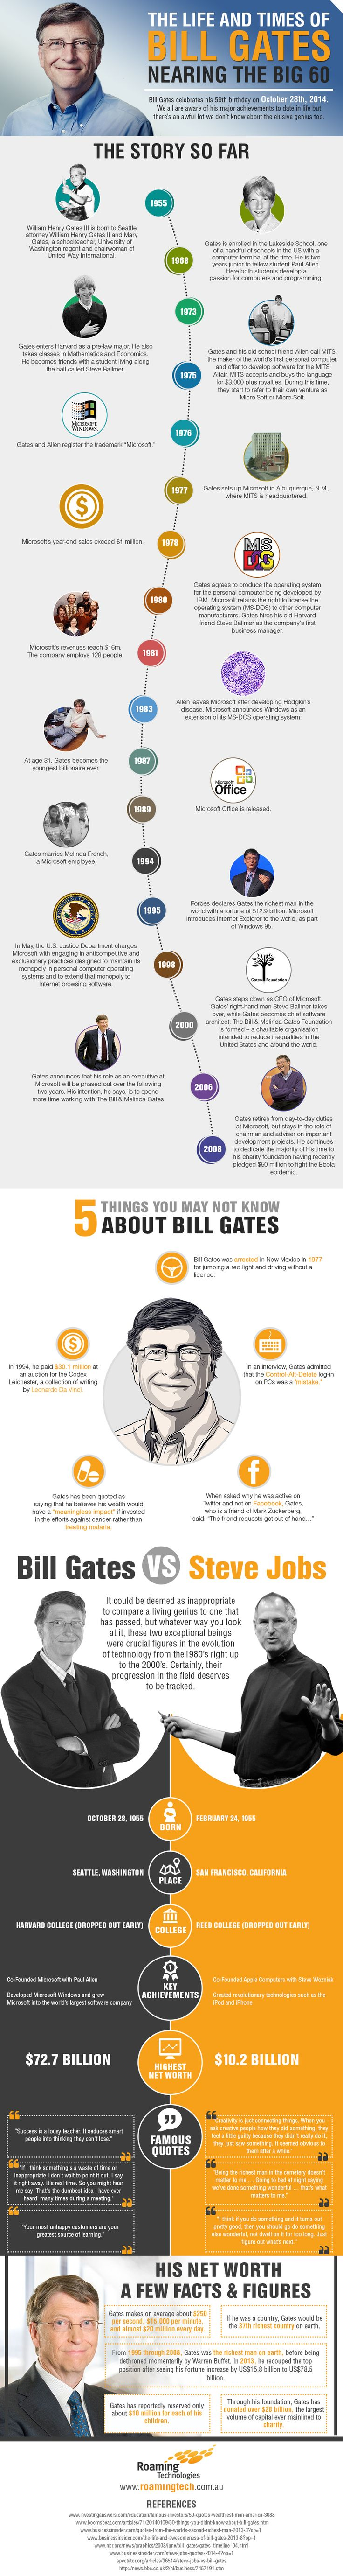 The life and times of Bill Gates (infographic) http://techfruit.com/2014/10/28/life-times-bill-gates-infographic/